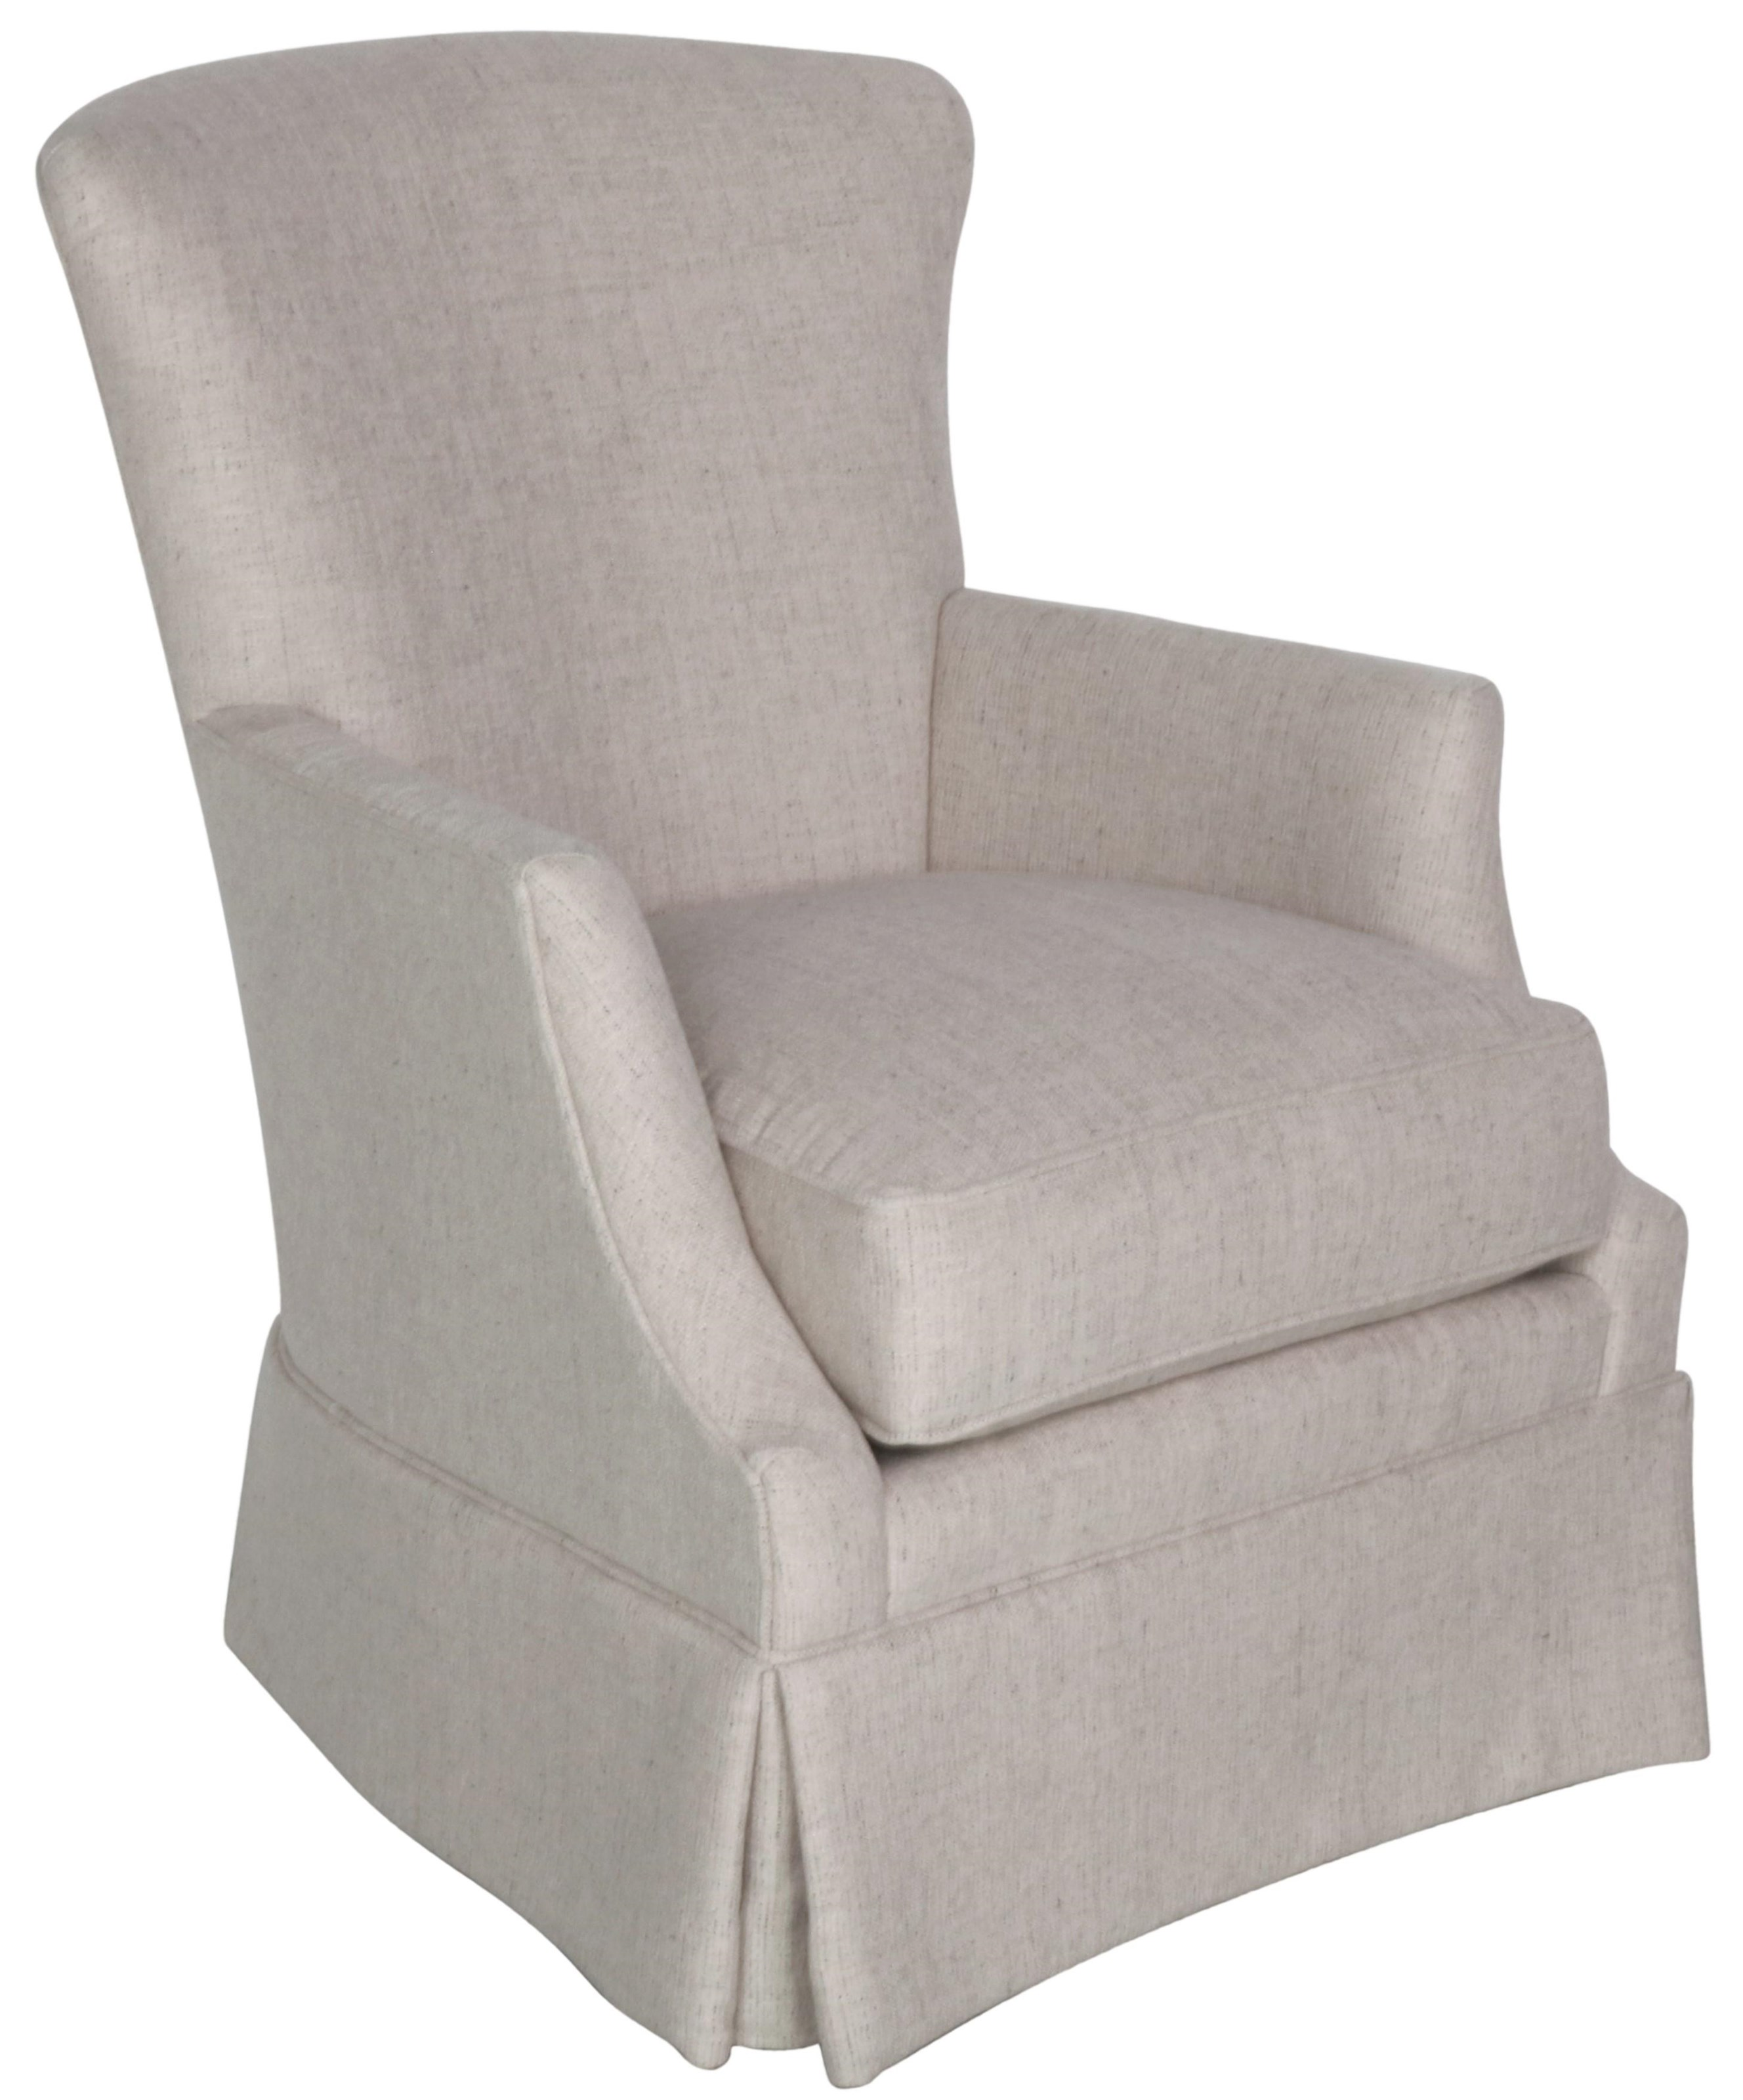 Swivel Accent Chairs Swivel Chair by Grove Park at Sprintz Furniture